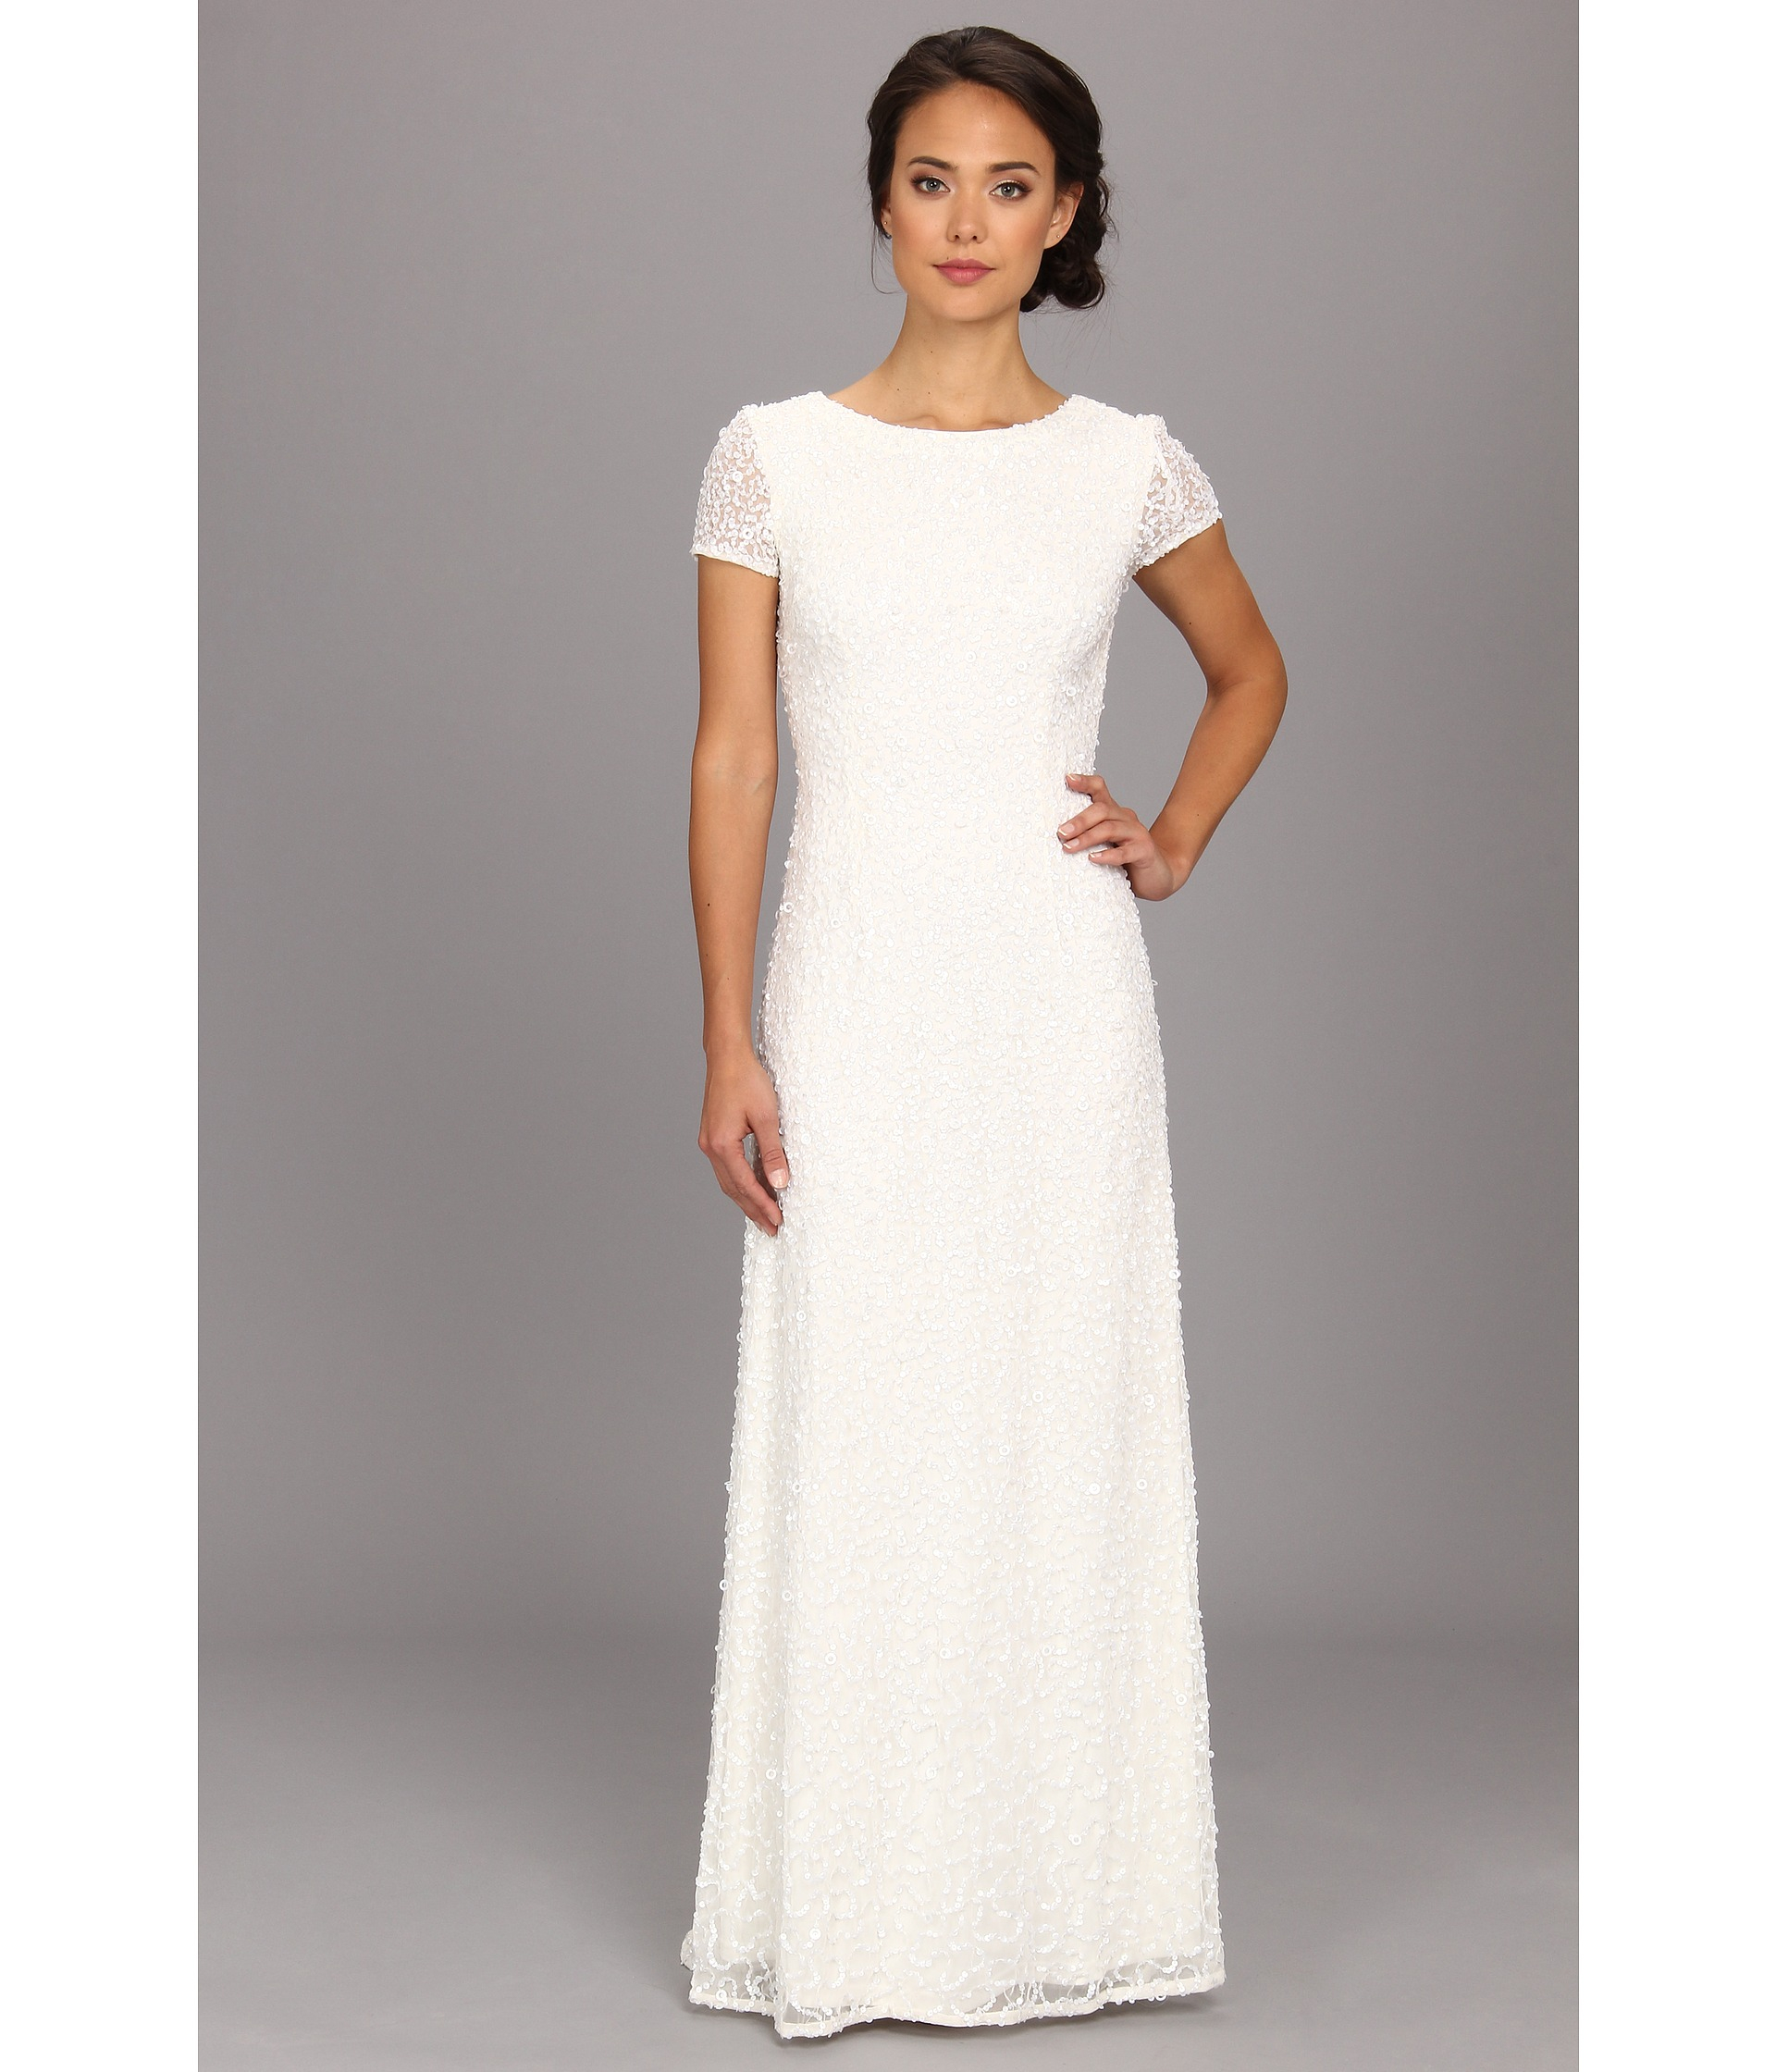 Lyst - Adrianna Papell Cap Sleeve Scoop Back Beaded Down Dress in White